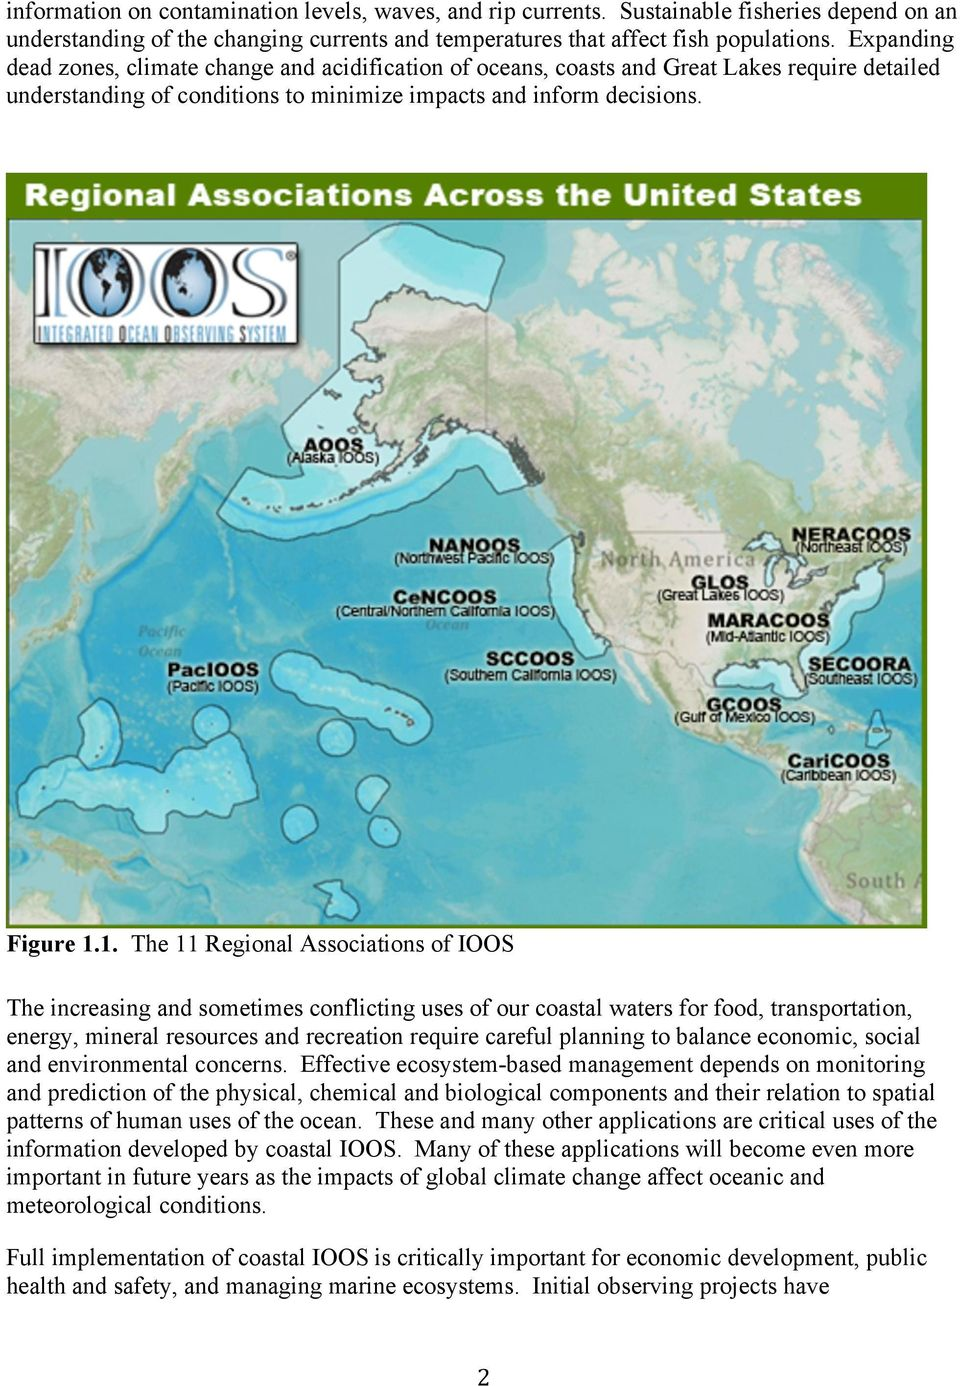 1. The 11 Regional Associations of IOOS The increasing and sometimes conflicting uses of our coastal waters for food, transportation, energy, mineral resources and recreation require careful planning